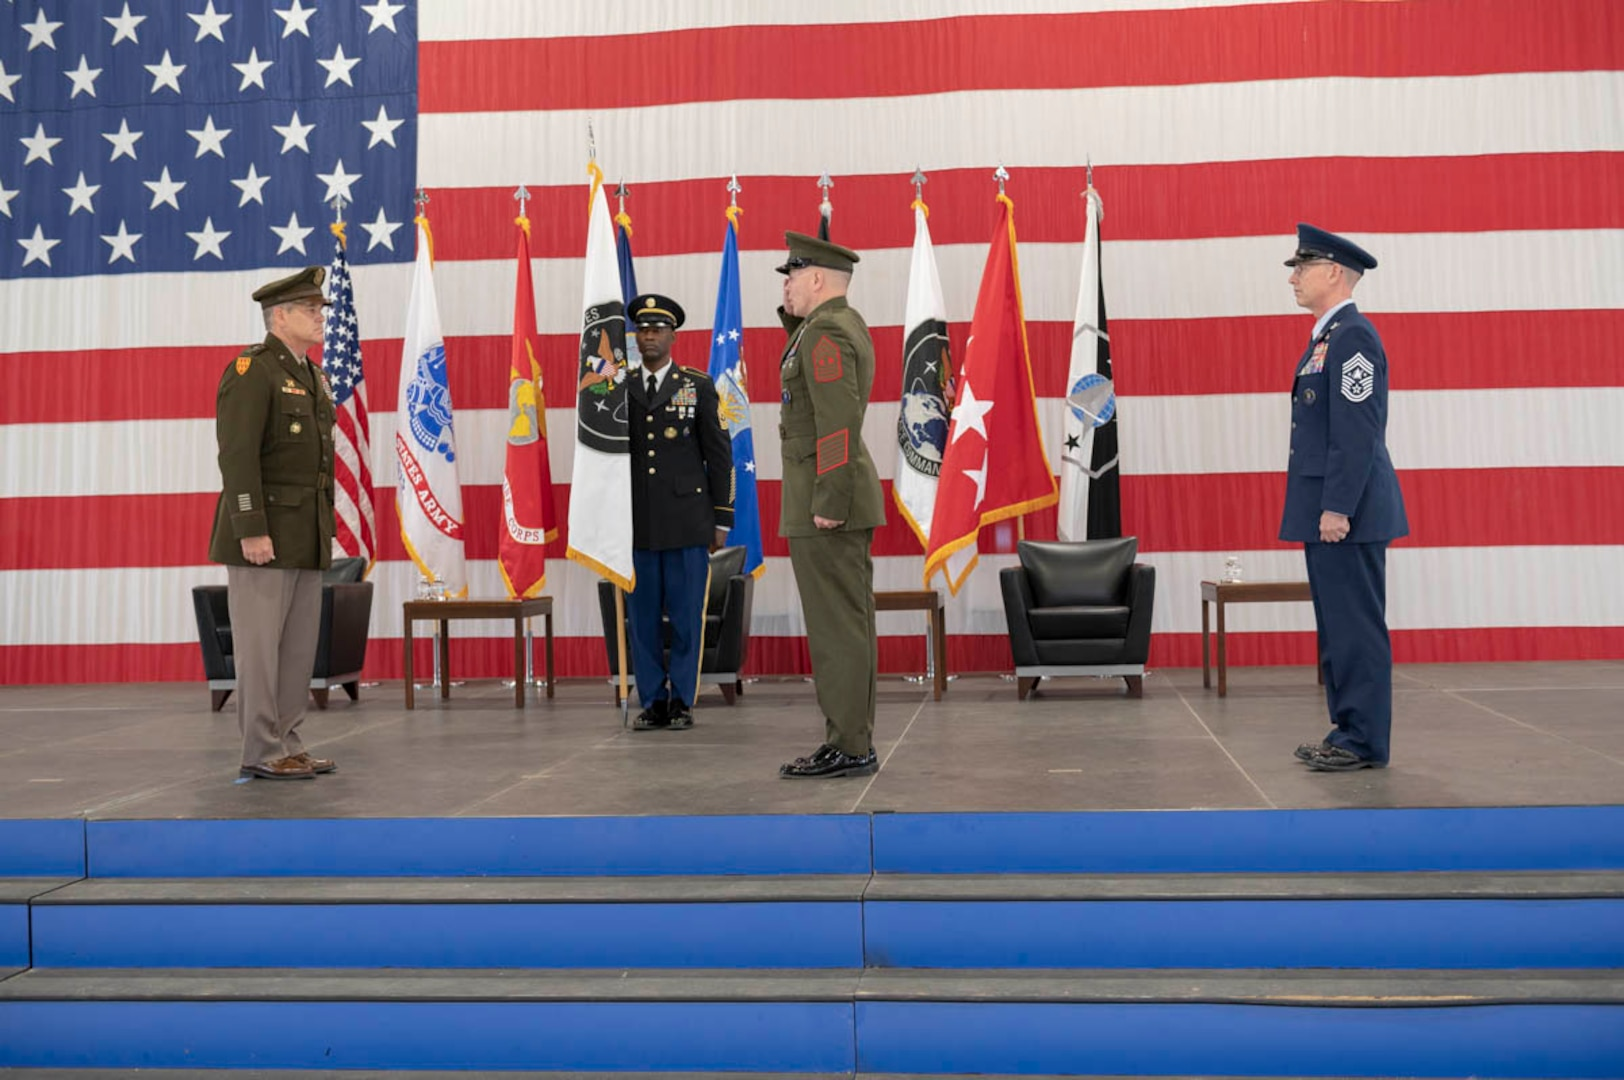 U.S. Marine Corps Master Gunnery Sgt. Scott Stalker accepts the U.S. Space Command colors from U.S. Army Gen. James Dickinson, USSPACECOM commander, Aug. 28, 2020, during a change of responsibility for the combatant command at Peterson Air Force Base, Colorado. Stalker assumed responsibility as USSPACECOM's command senior enlisted leader from U.S. Space Force Chief Master Sgt. Roger Towberman during the ceremony. Due to heightened health precautions leaders did not do a traditional passing of the colors during the ceremony. Instead, the colors entrusted to Command Sgt. Maj. Eric McCray, USSPACECOM Commandant.